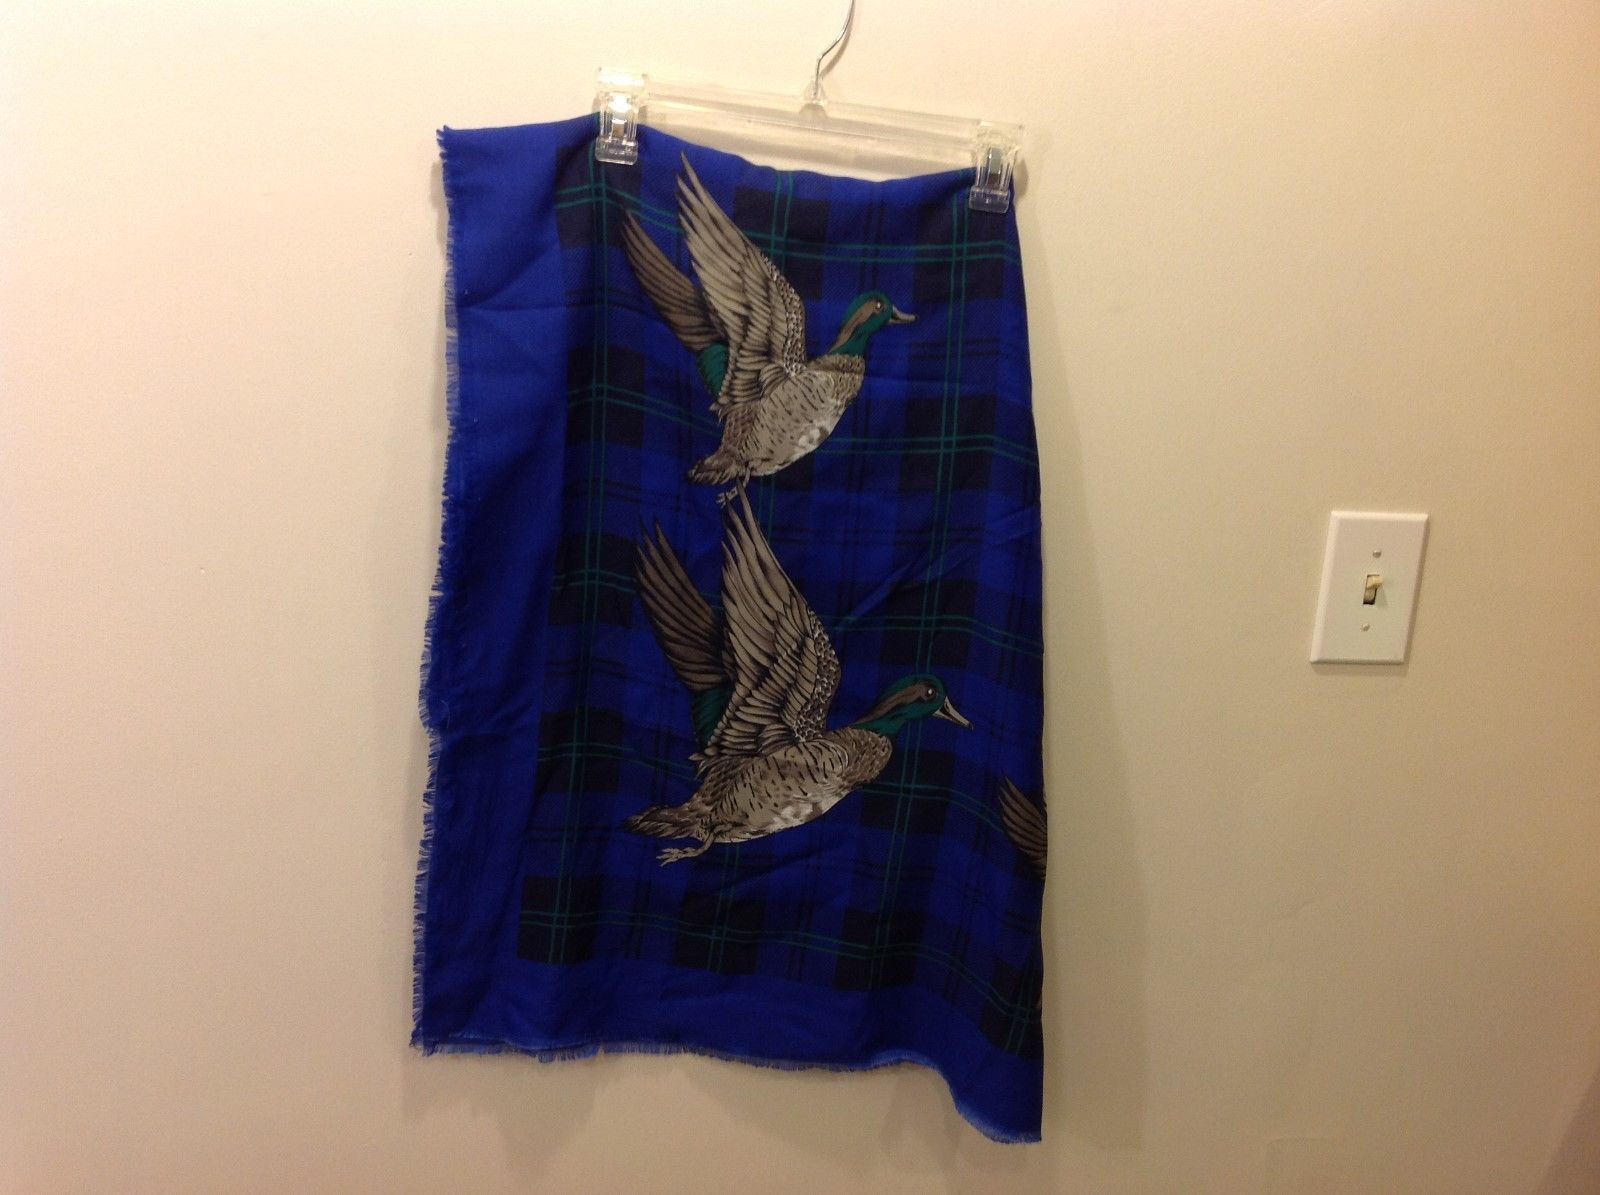 Royal Blue Black/Green Plaid Scarf w/ Repeated Flying Duck Image